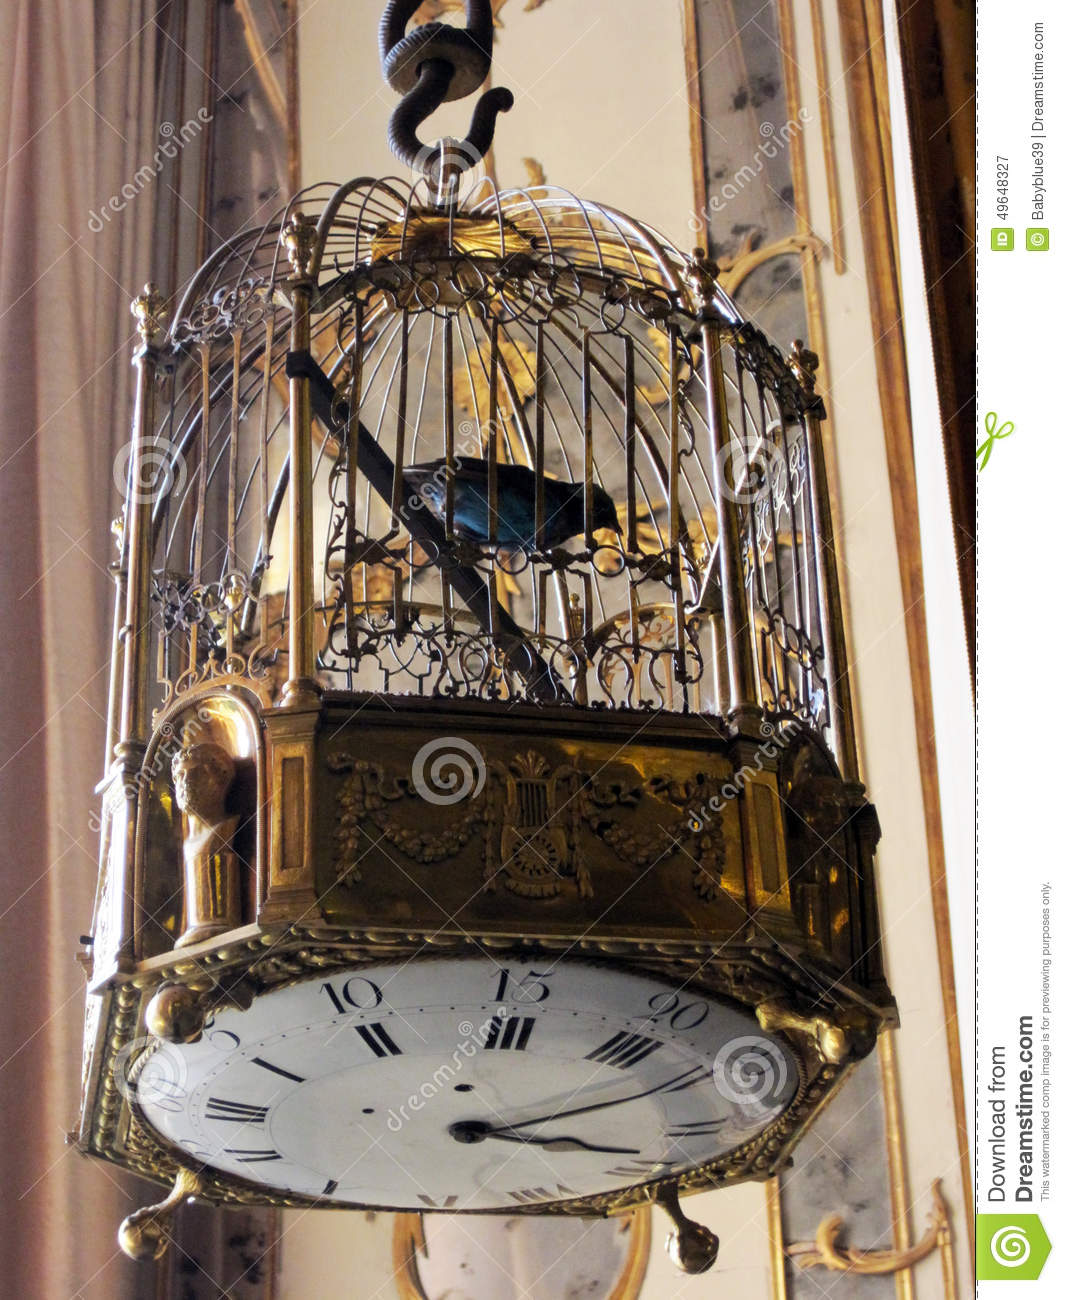 bird cage watch stock image image of animal caserta 49648327. Black Bedroom Furniture Sets. Home Design Ideas